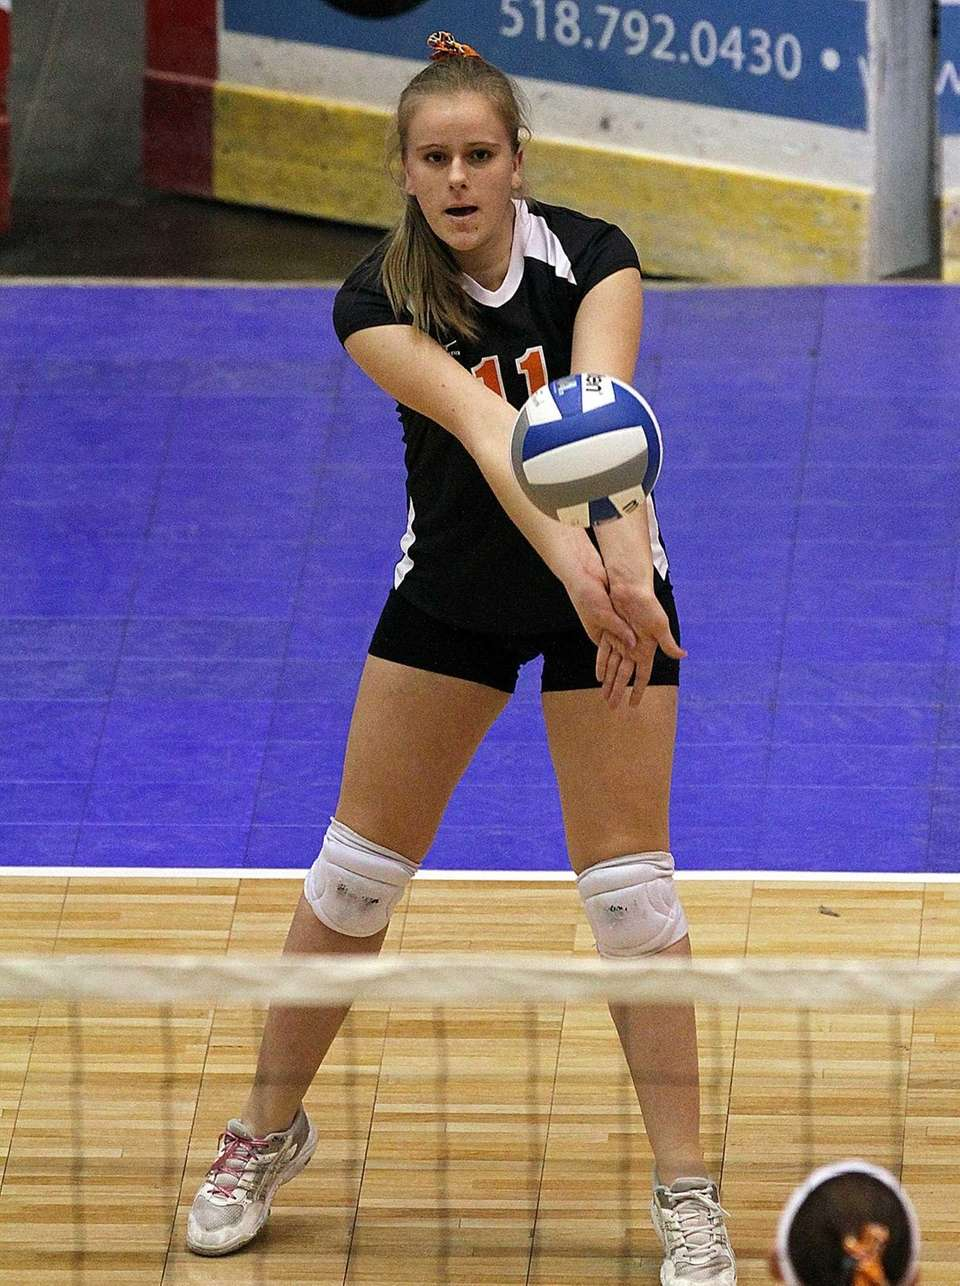 Babylon's Elizabeth Tighe gets the dig during the